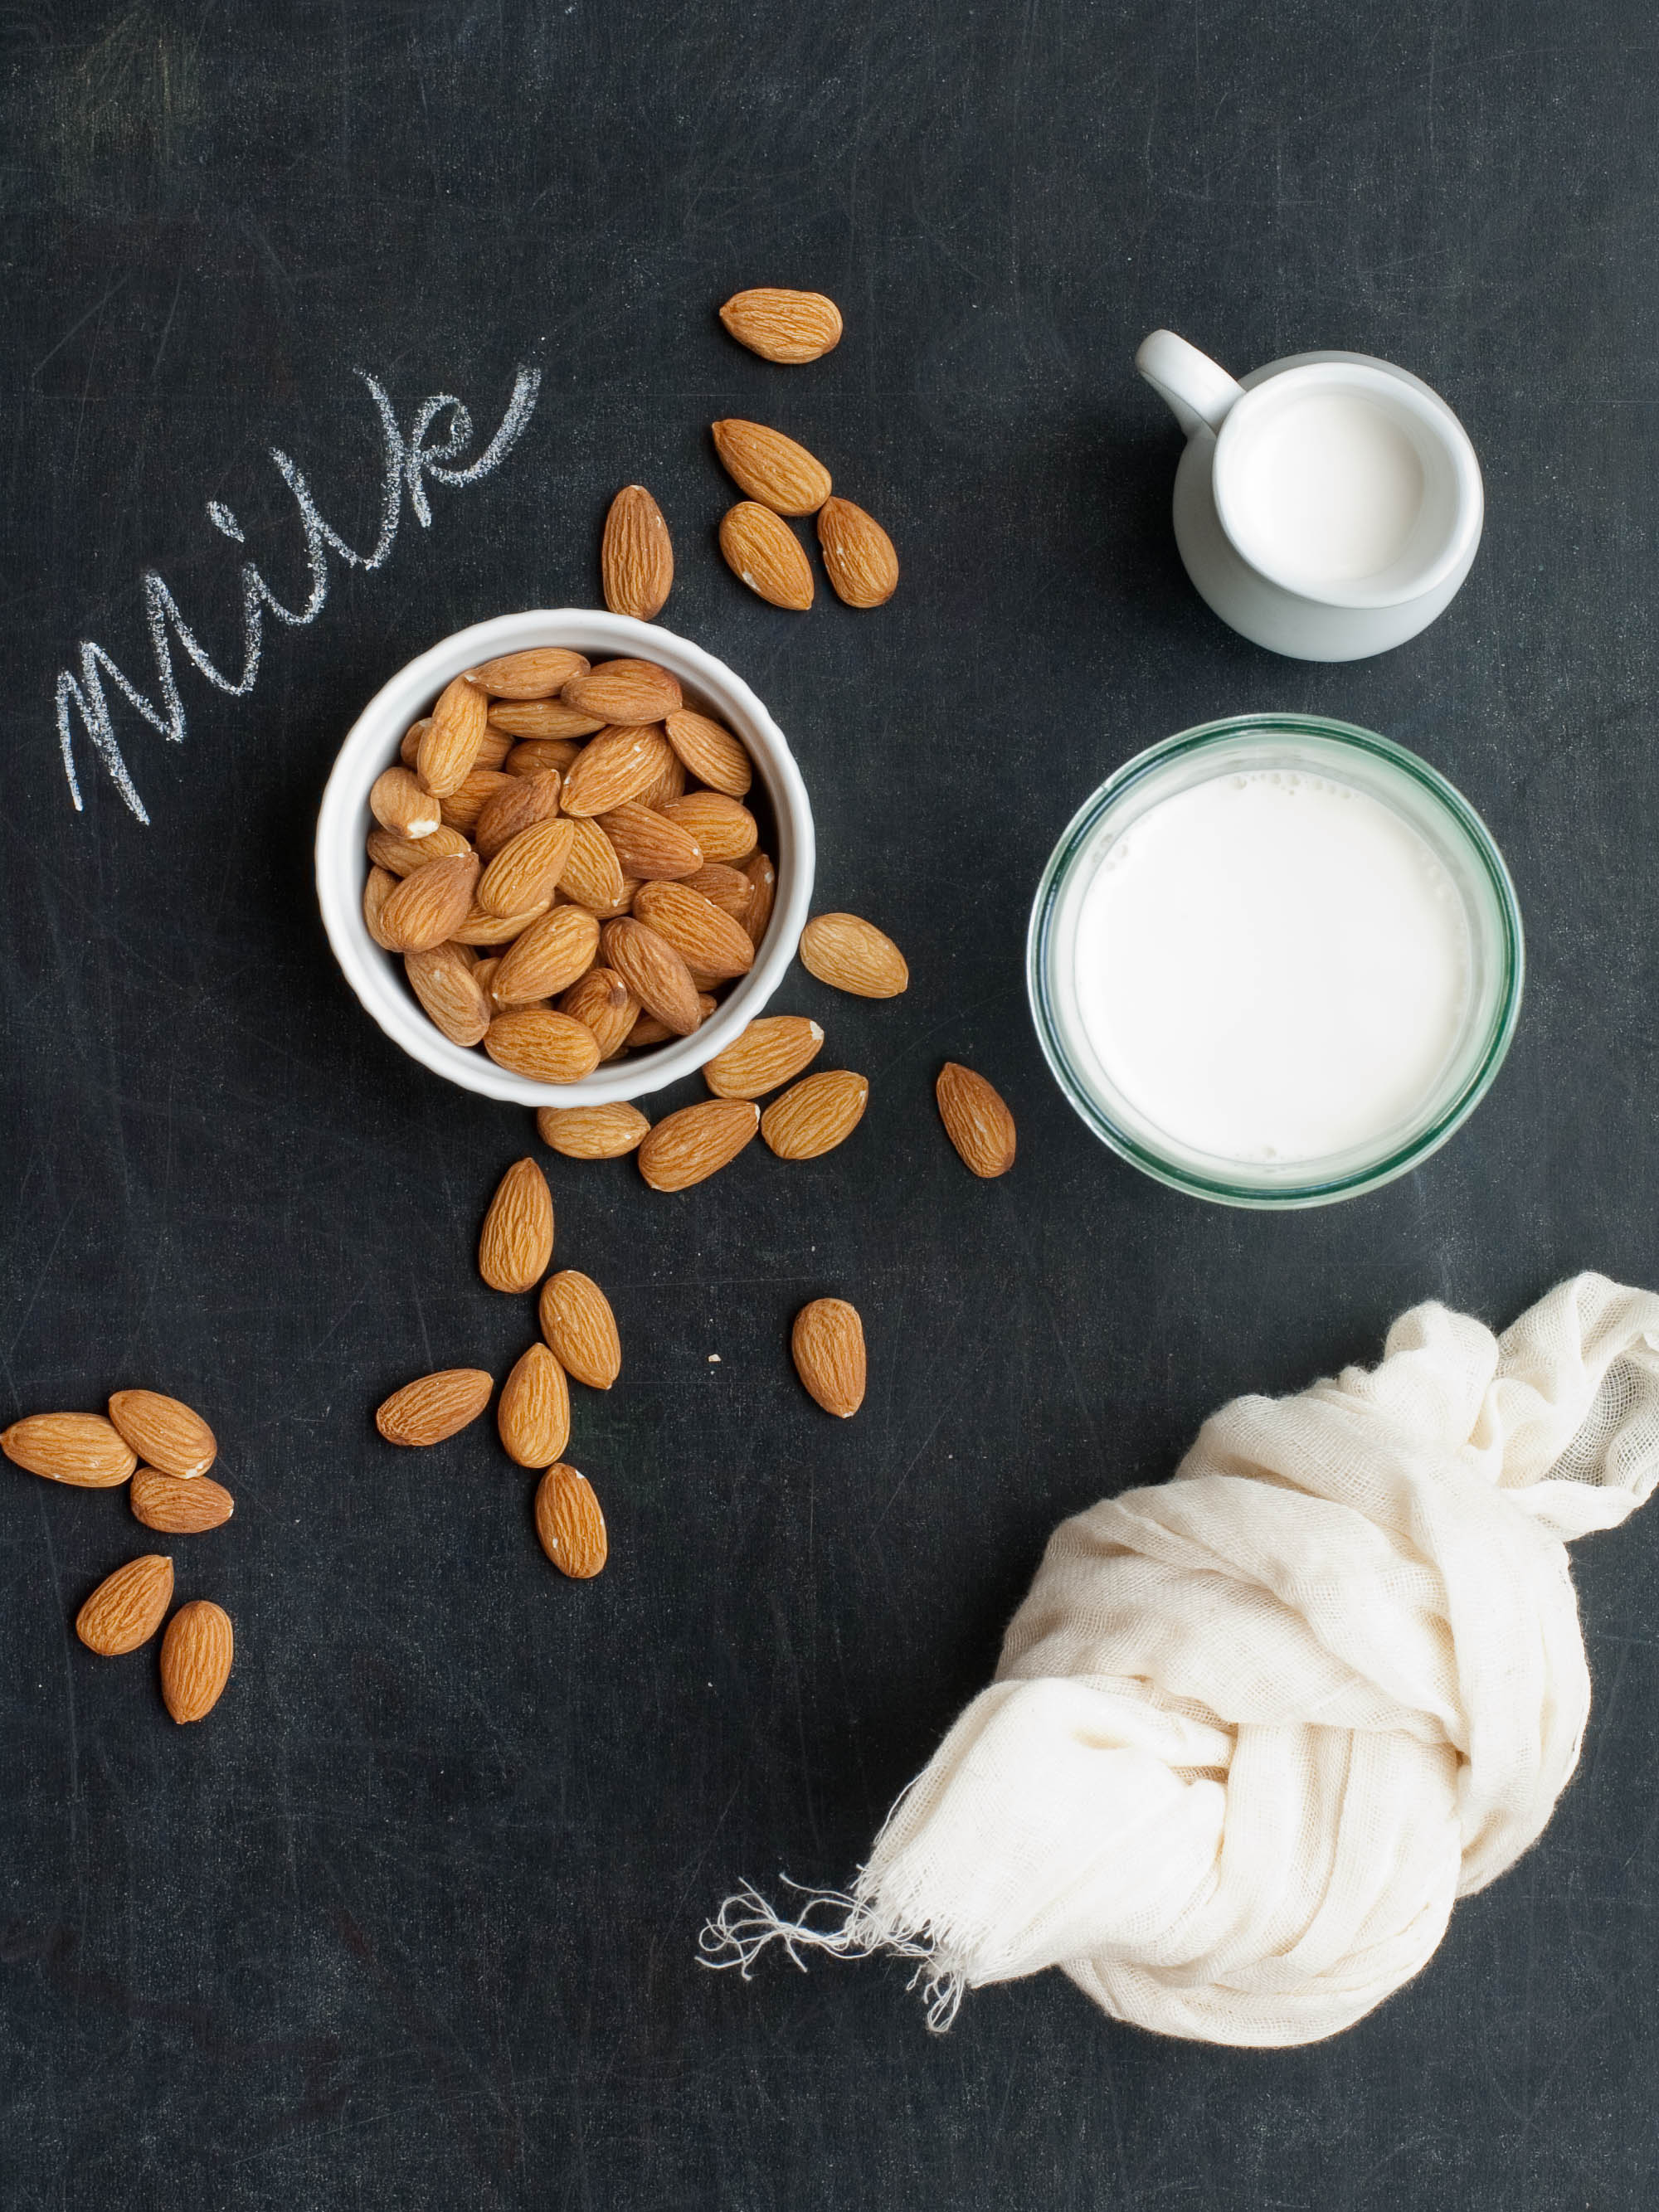 How to Make Almond Milk at Home | Umami Girl